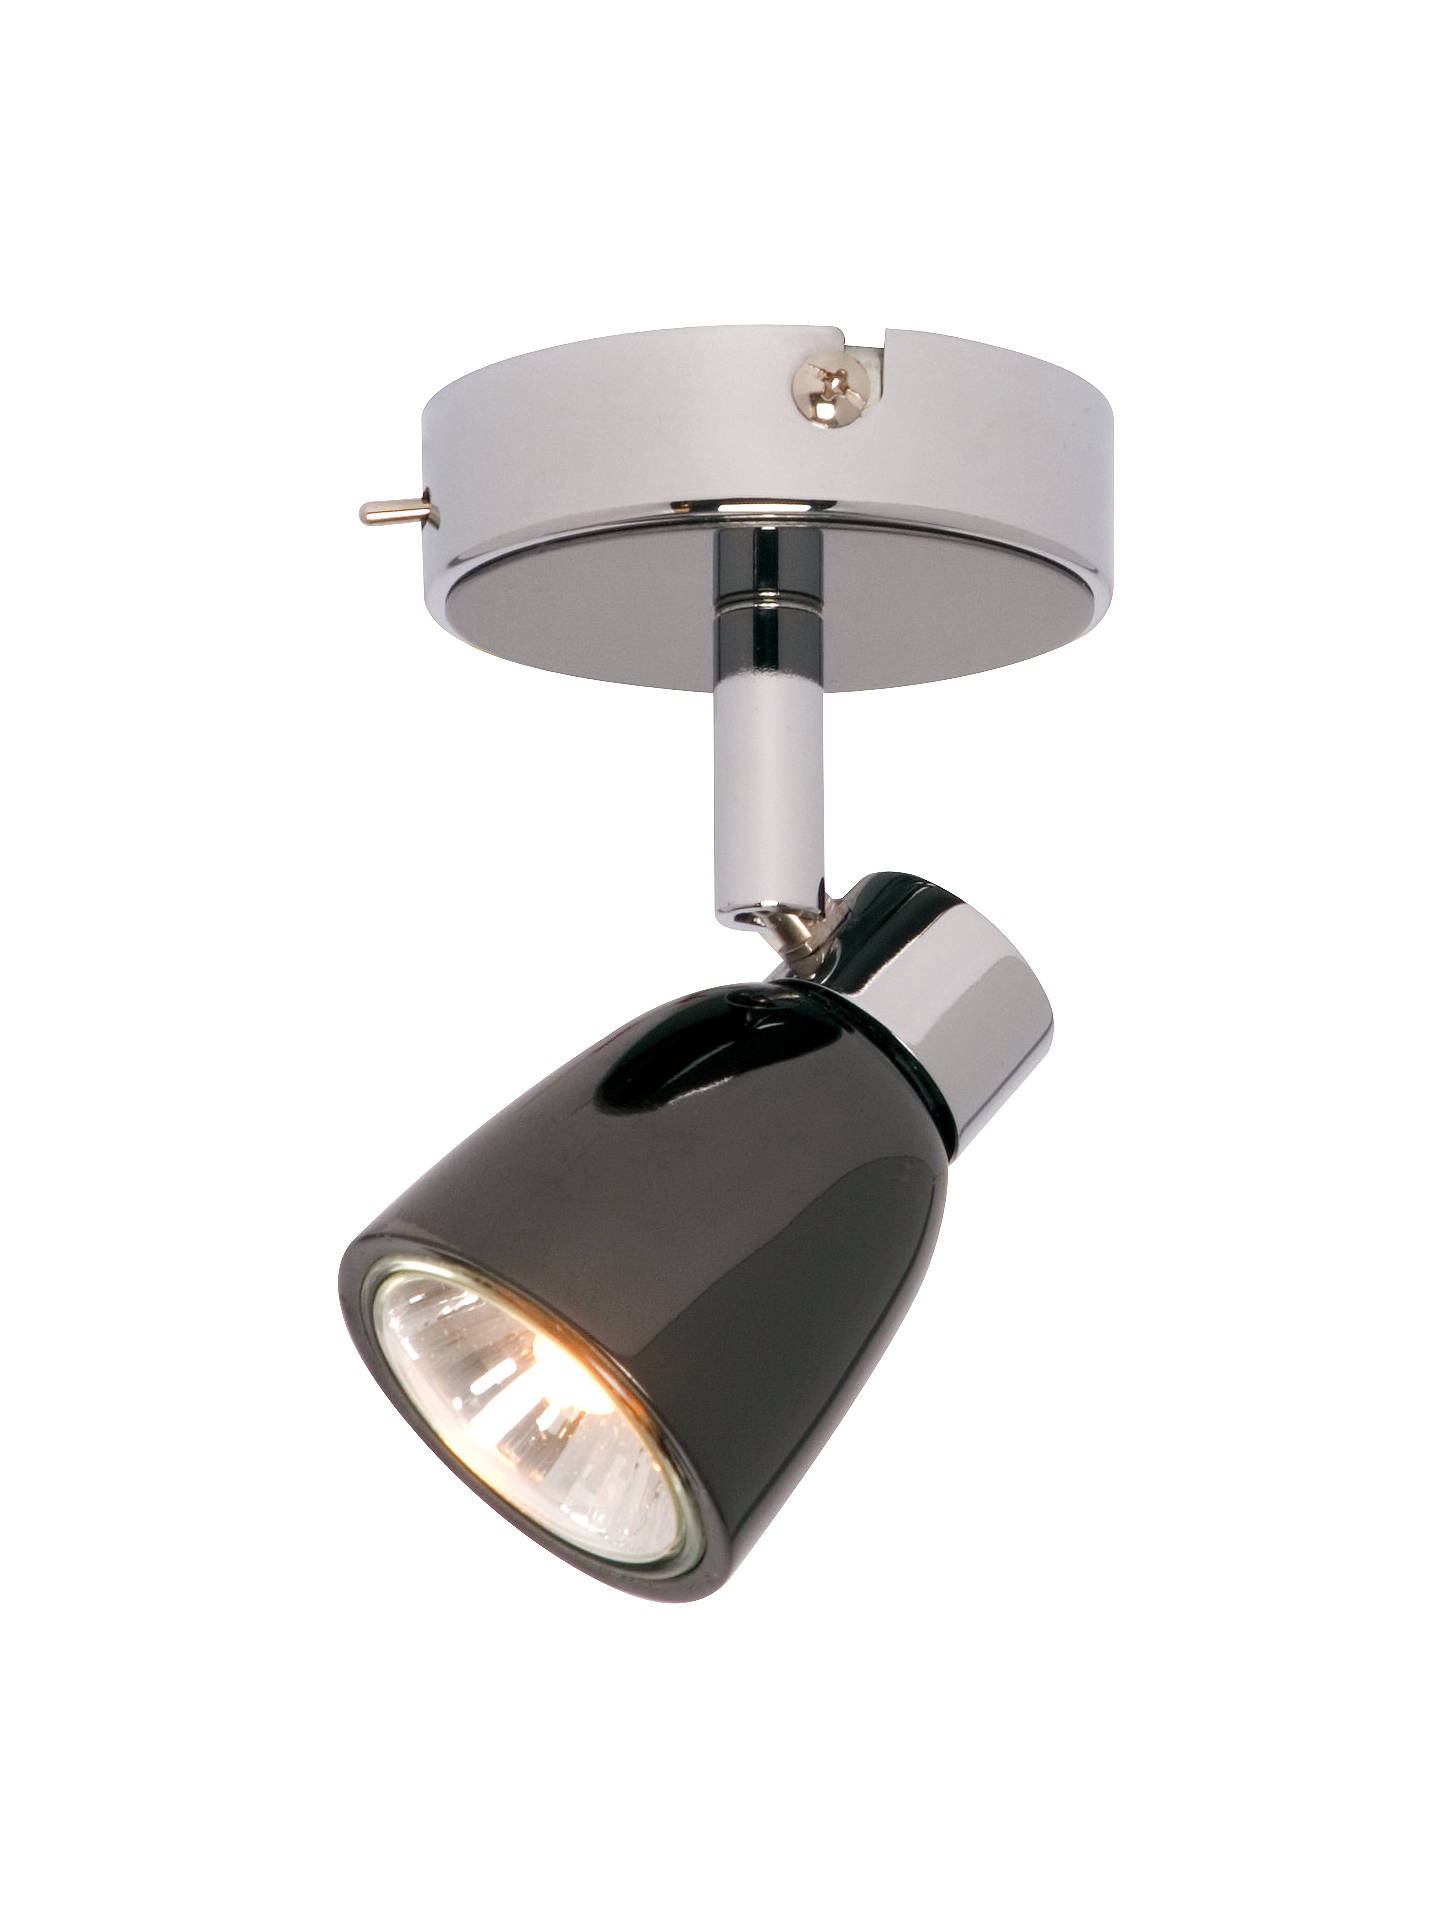 BuyJohn Lewis & Partners Fenix GU10 LED Single Spotlight, Black Pearl Nickel Online at johnlewis.com